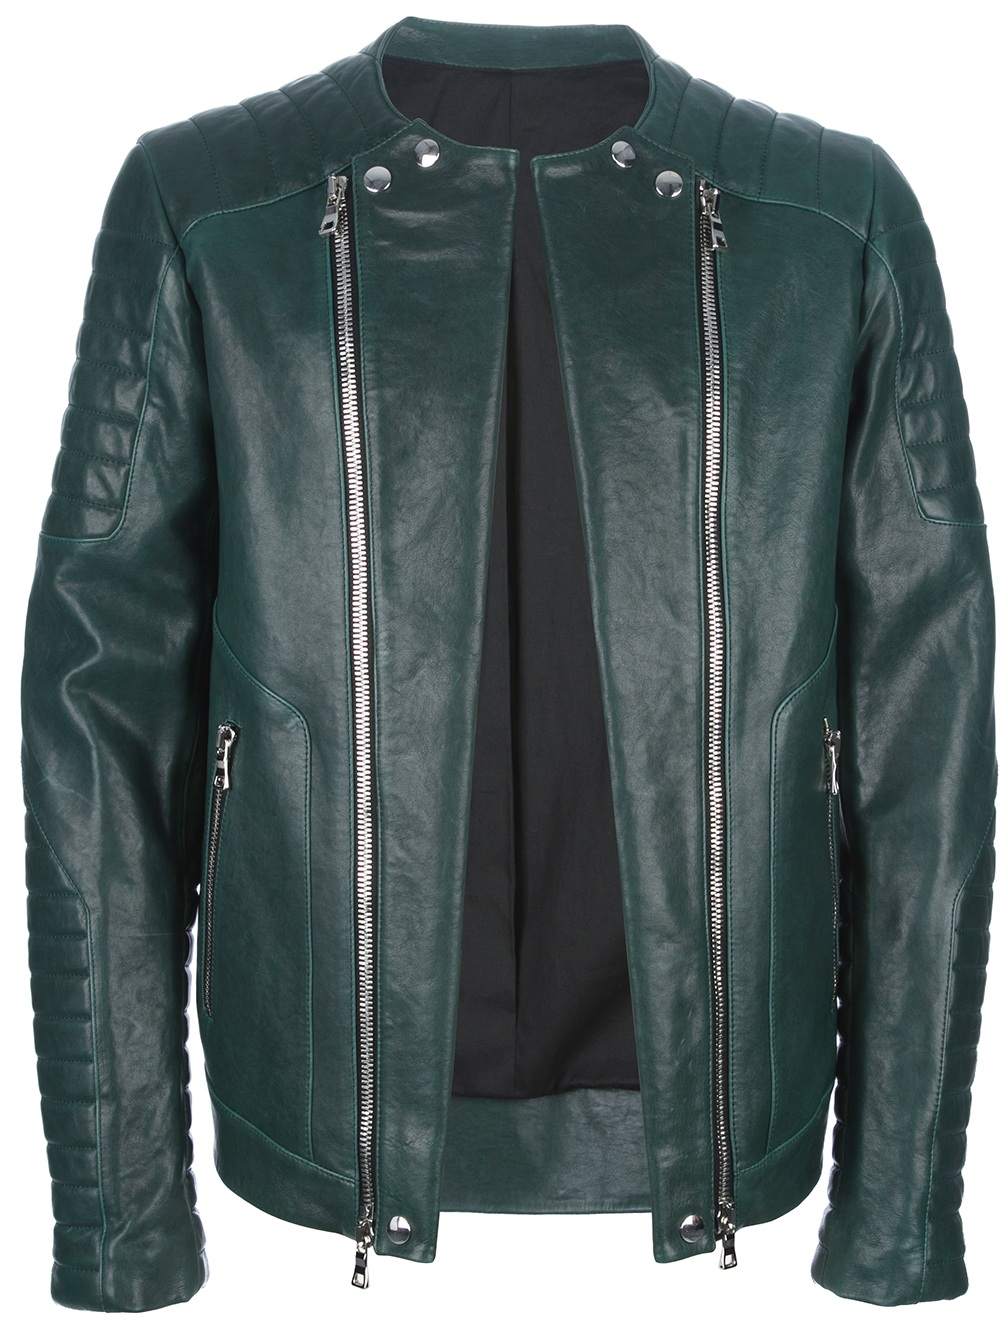 I expect my clothes to carry me from season to season and I like to invest in key pieces. This Balmain leather jacket is a wardrobe staple and perfect for ever changing climates as I travel from country to country. The colour of this piece is everlasting and will work with any outfit.